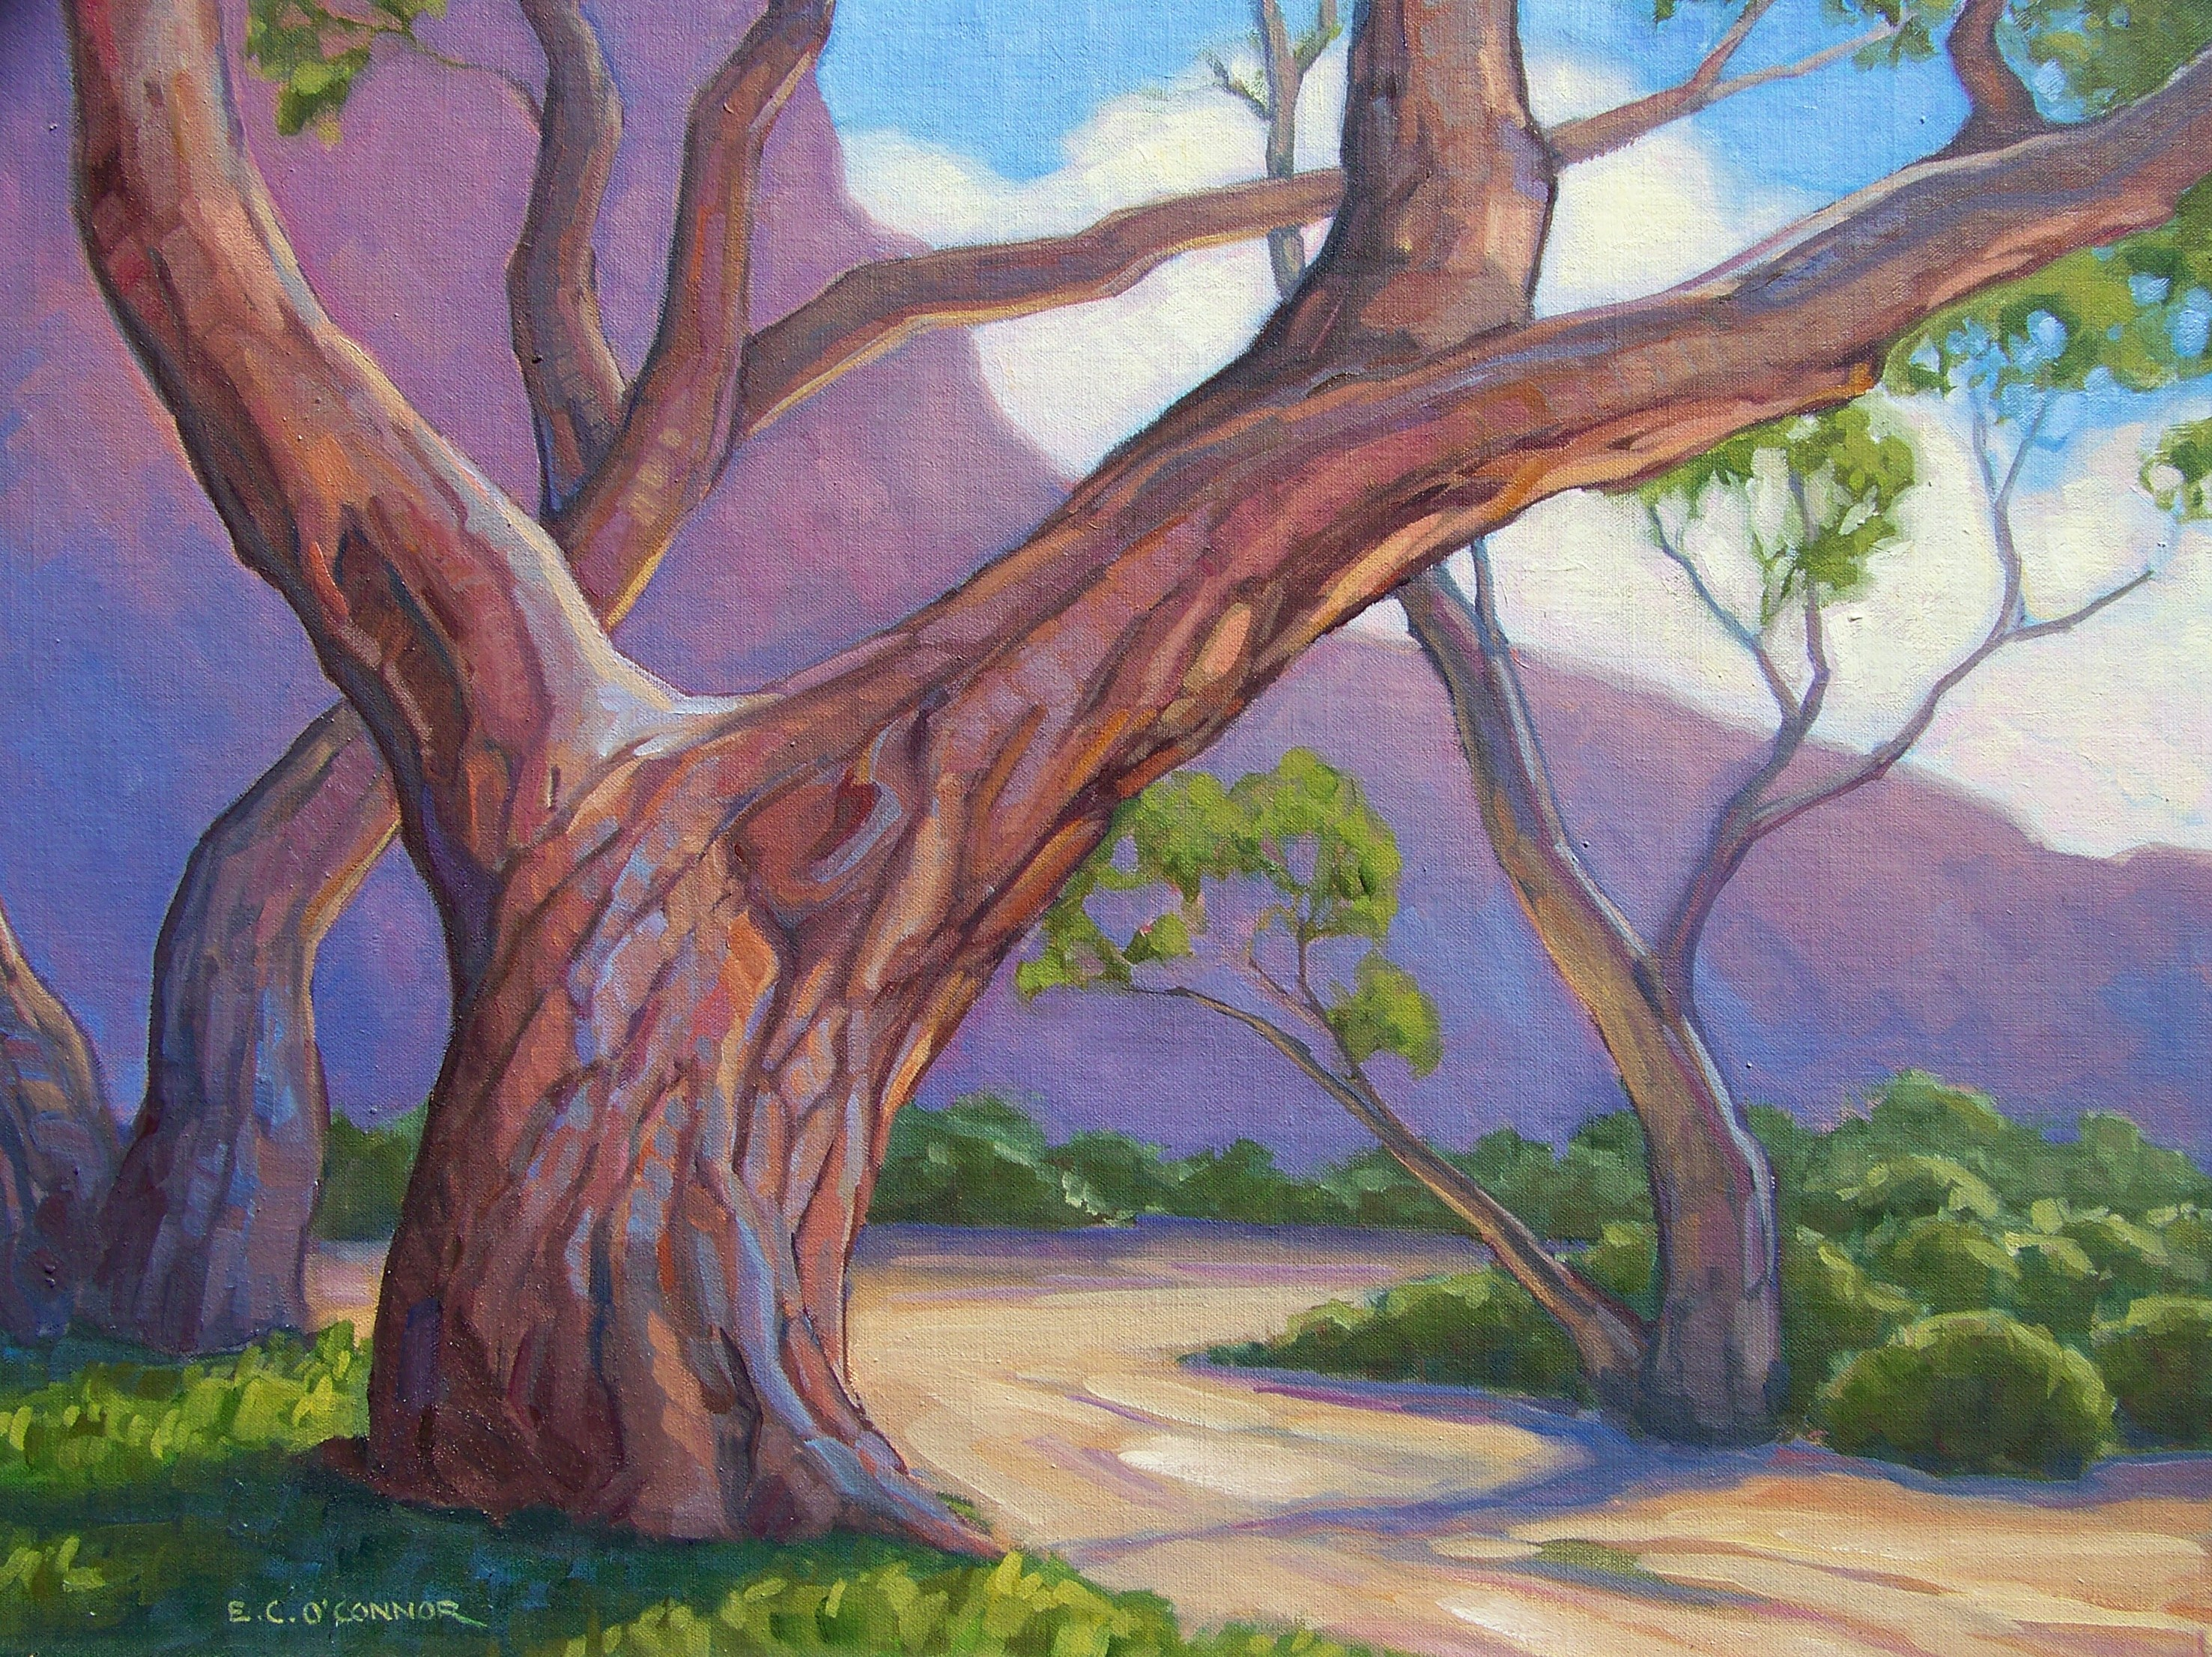 Santa Fe Trail Cottonwood, 18x24, oil on linen